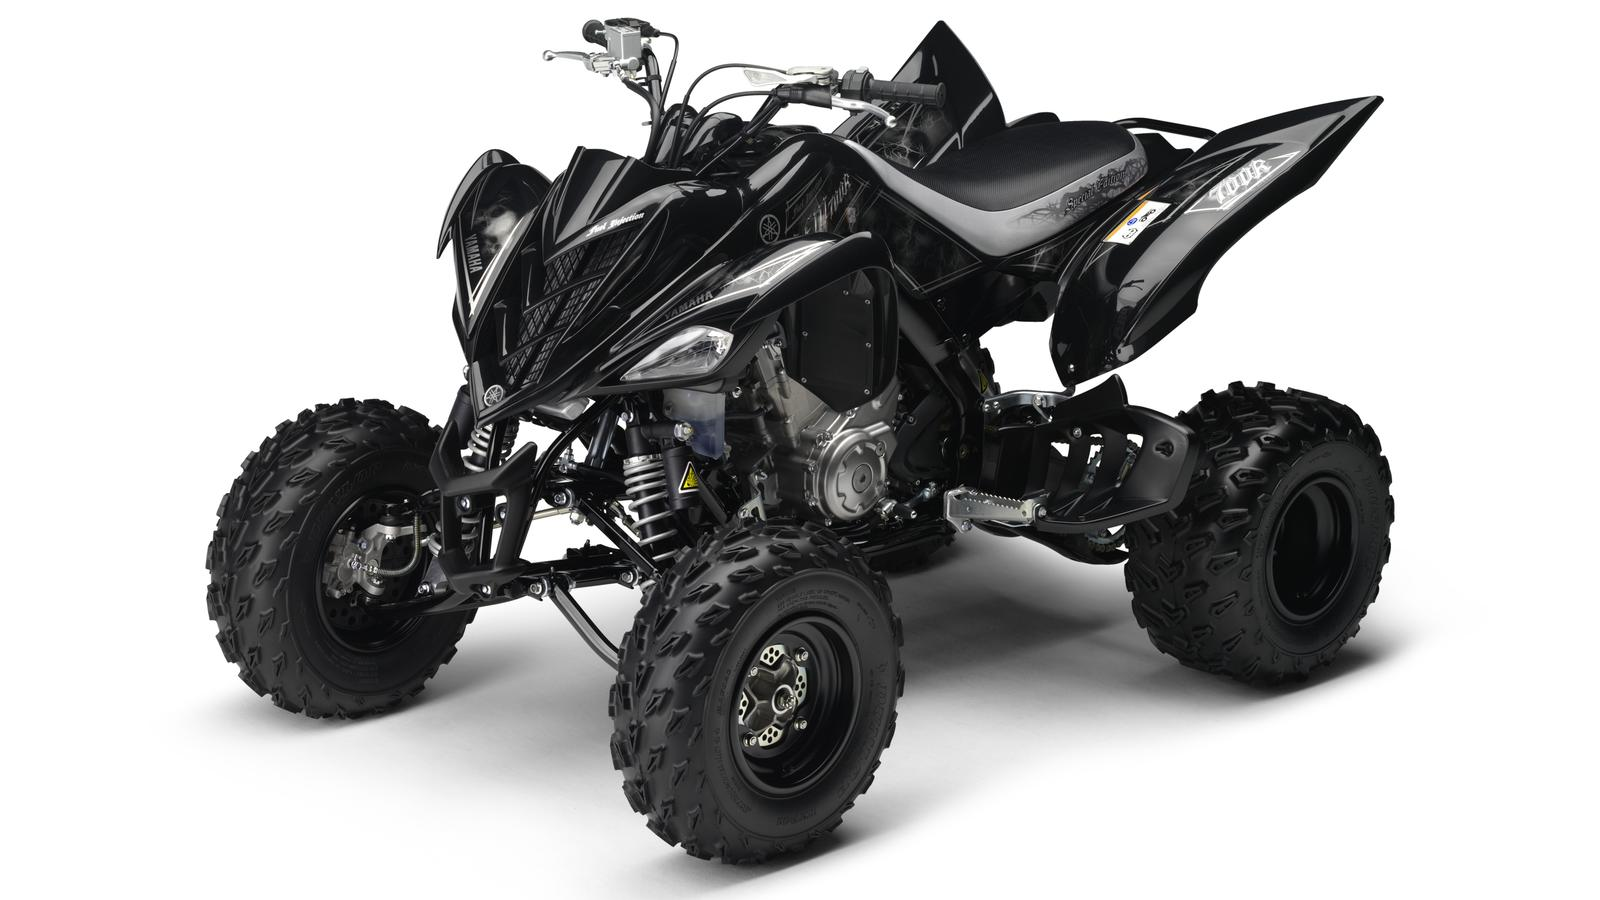 YAMAHA YFM 700 R Raptor  2011 photo 8